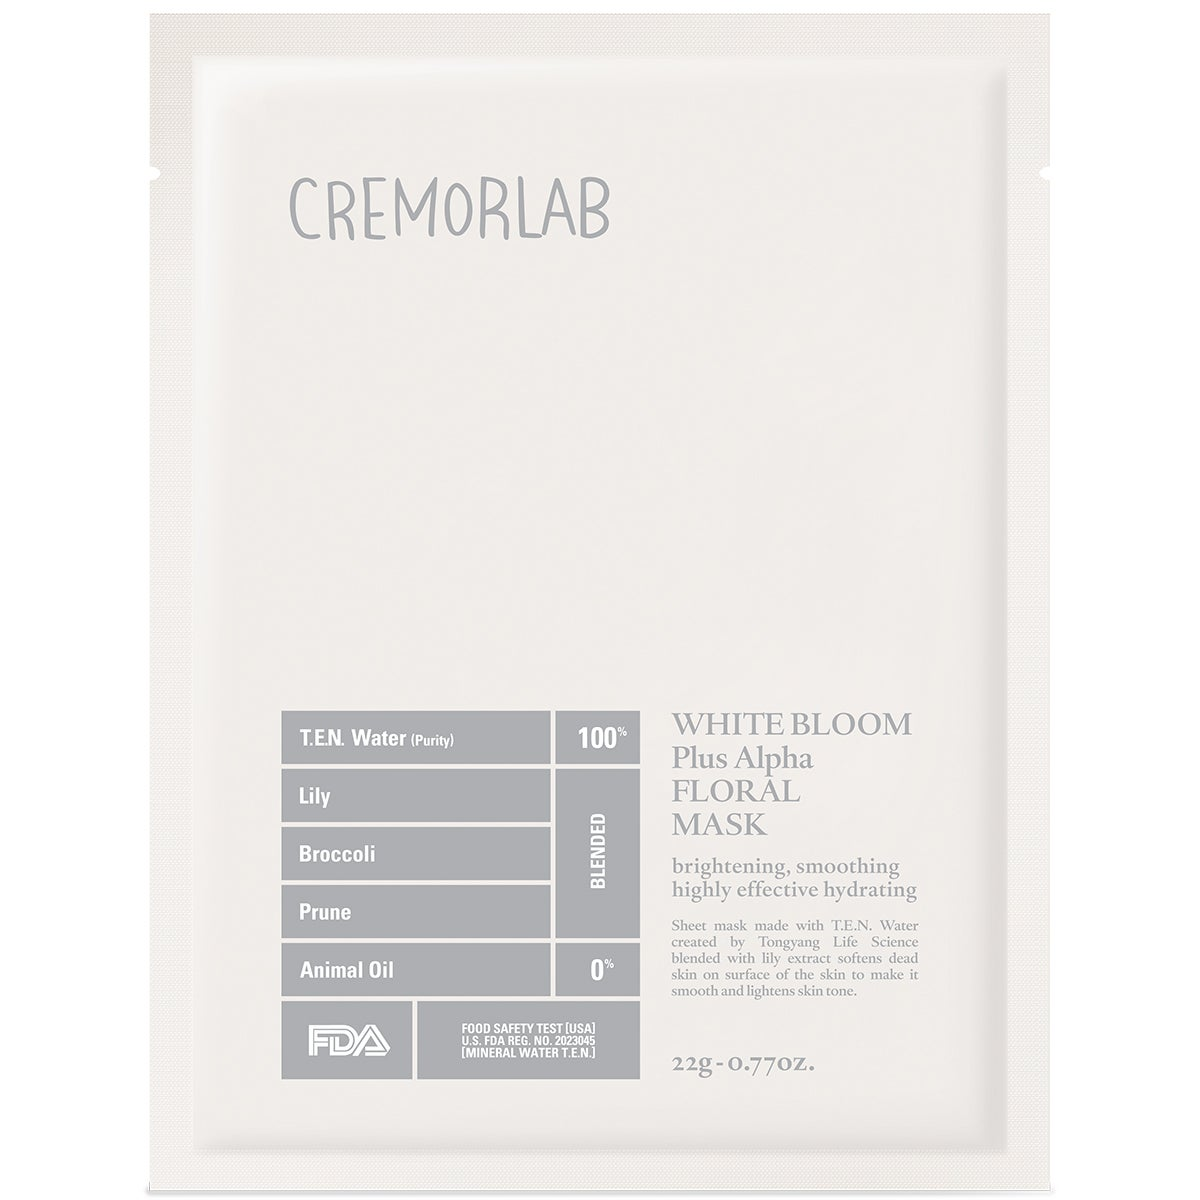 Cremorlab White Bloom Triple Bright Floral Mask